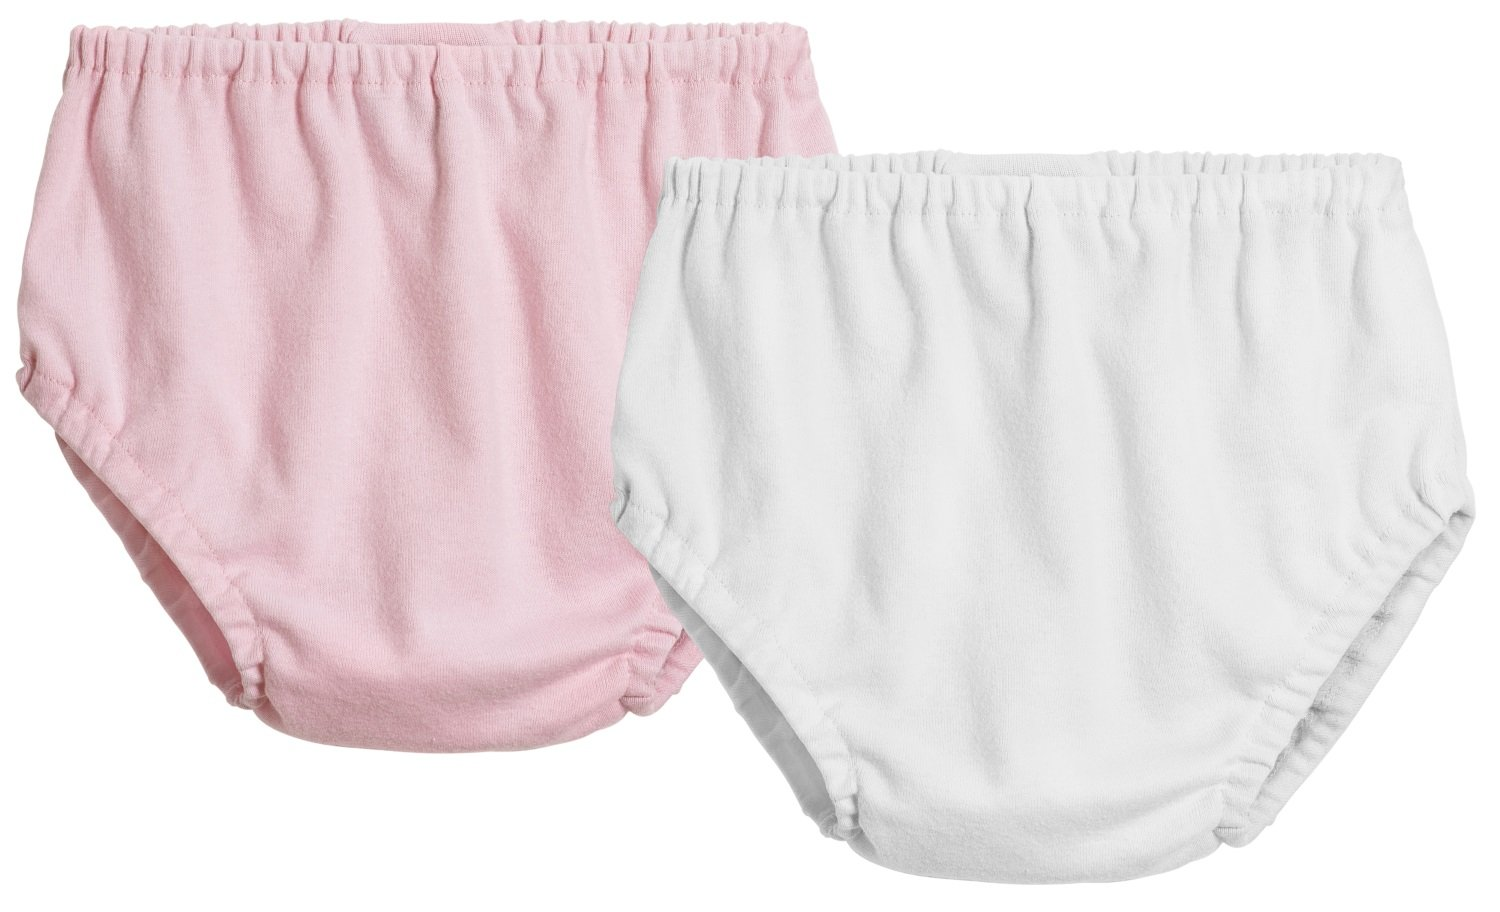 City Threads 2-Pack Little Girls' and Little Boys'' Unisex Diaper Covers Bloomers Soft Cotton, Pink/White, 3T by City Threads